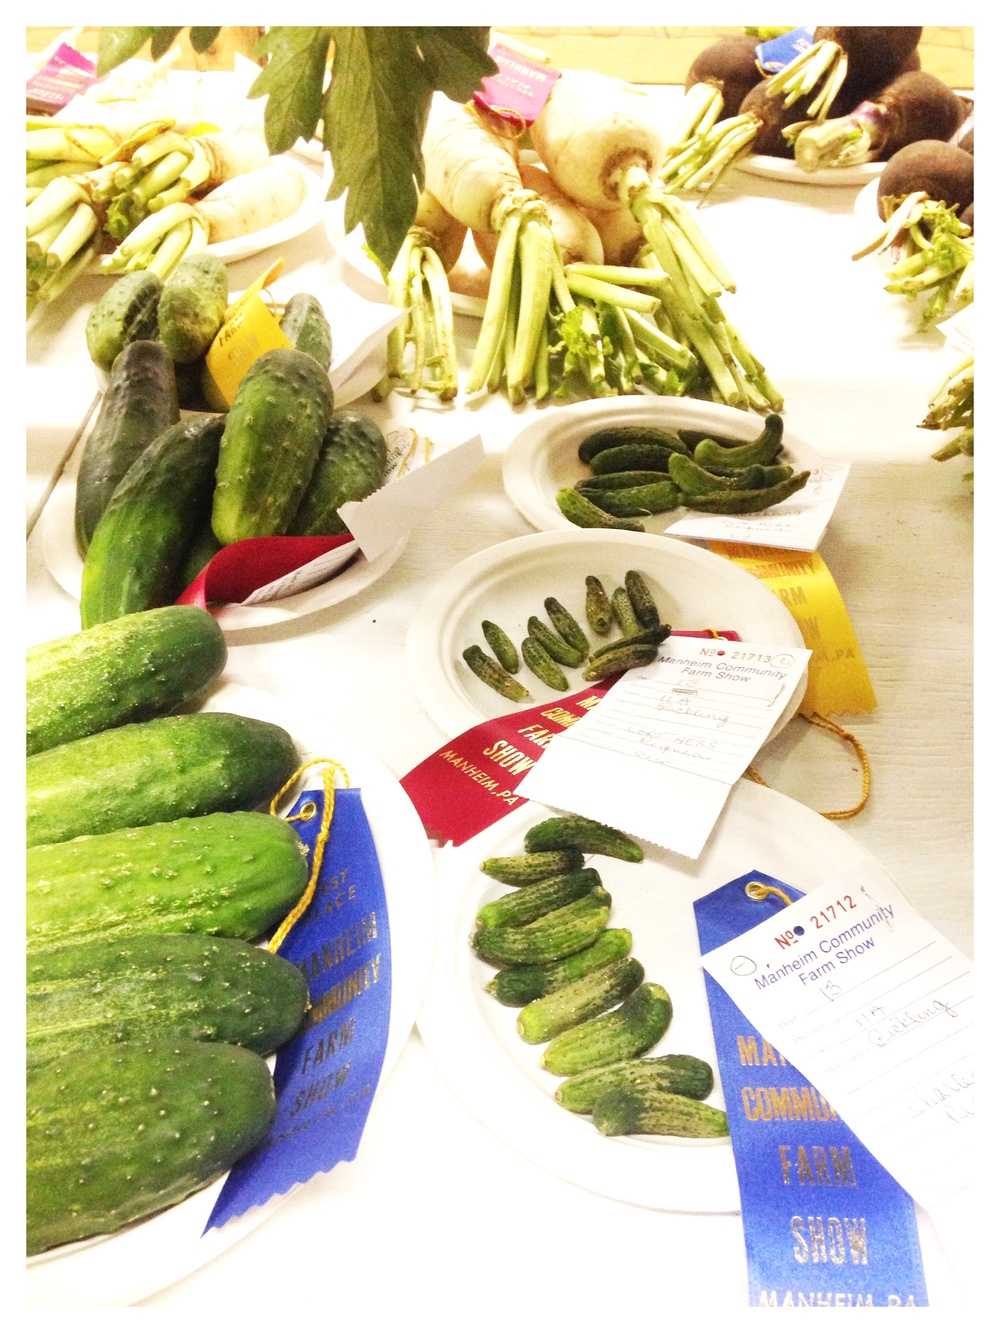 Prize-winning cucumbers at the Manheim farm show!